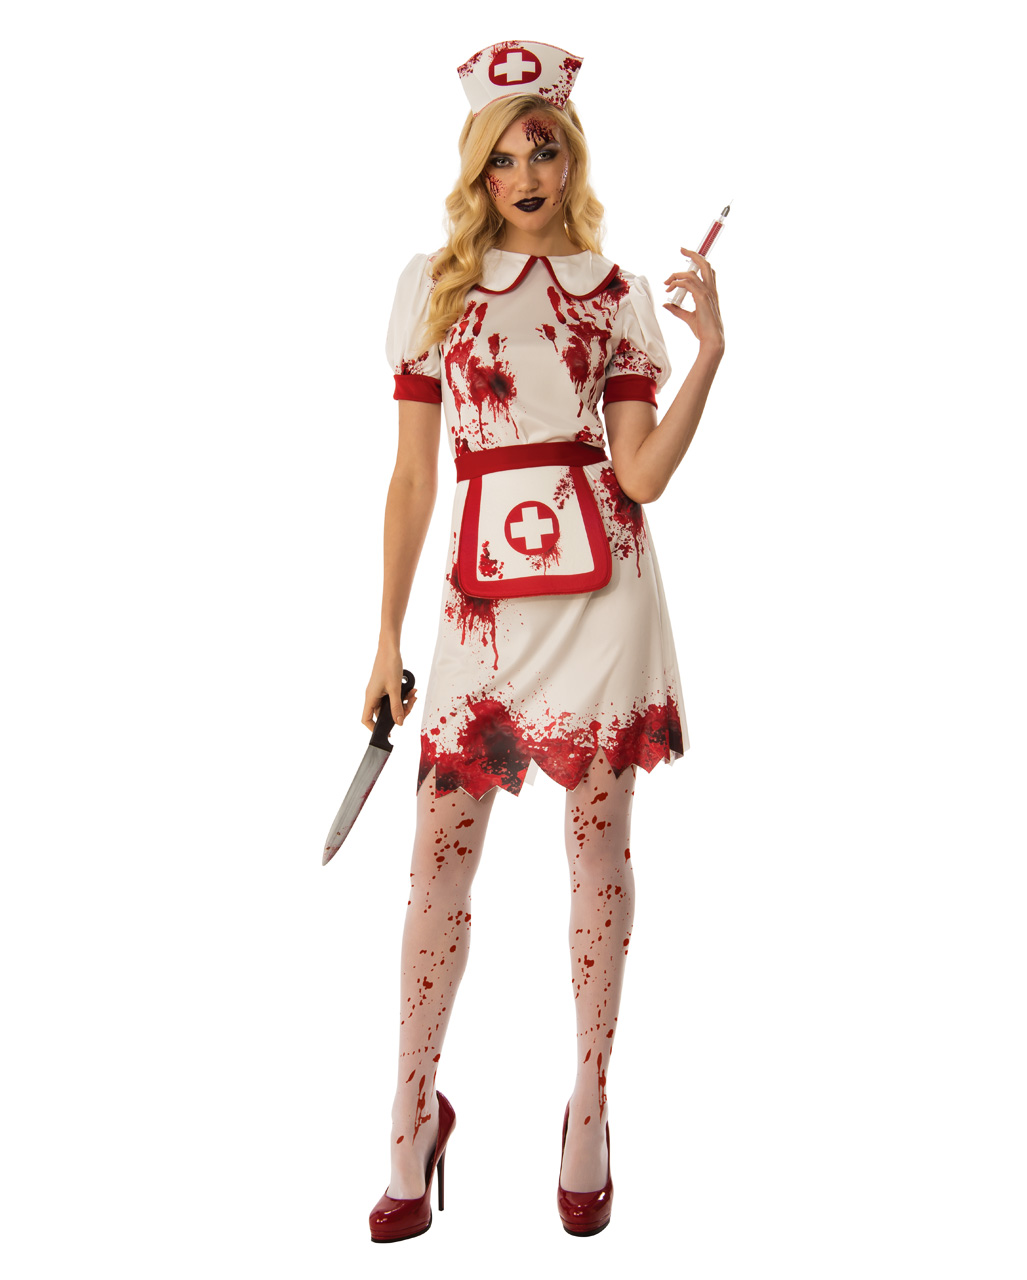 horror-nurse-the-costumes-halloween-costume-ladies-for-adult-bloody-nurse-costume